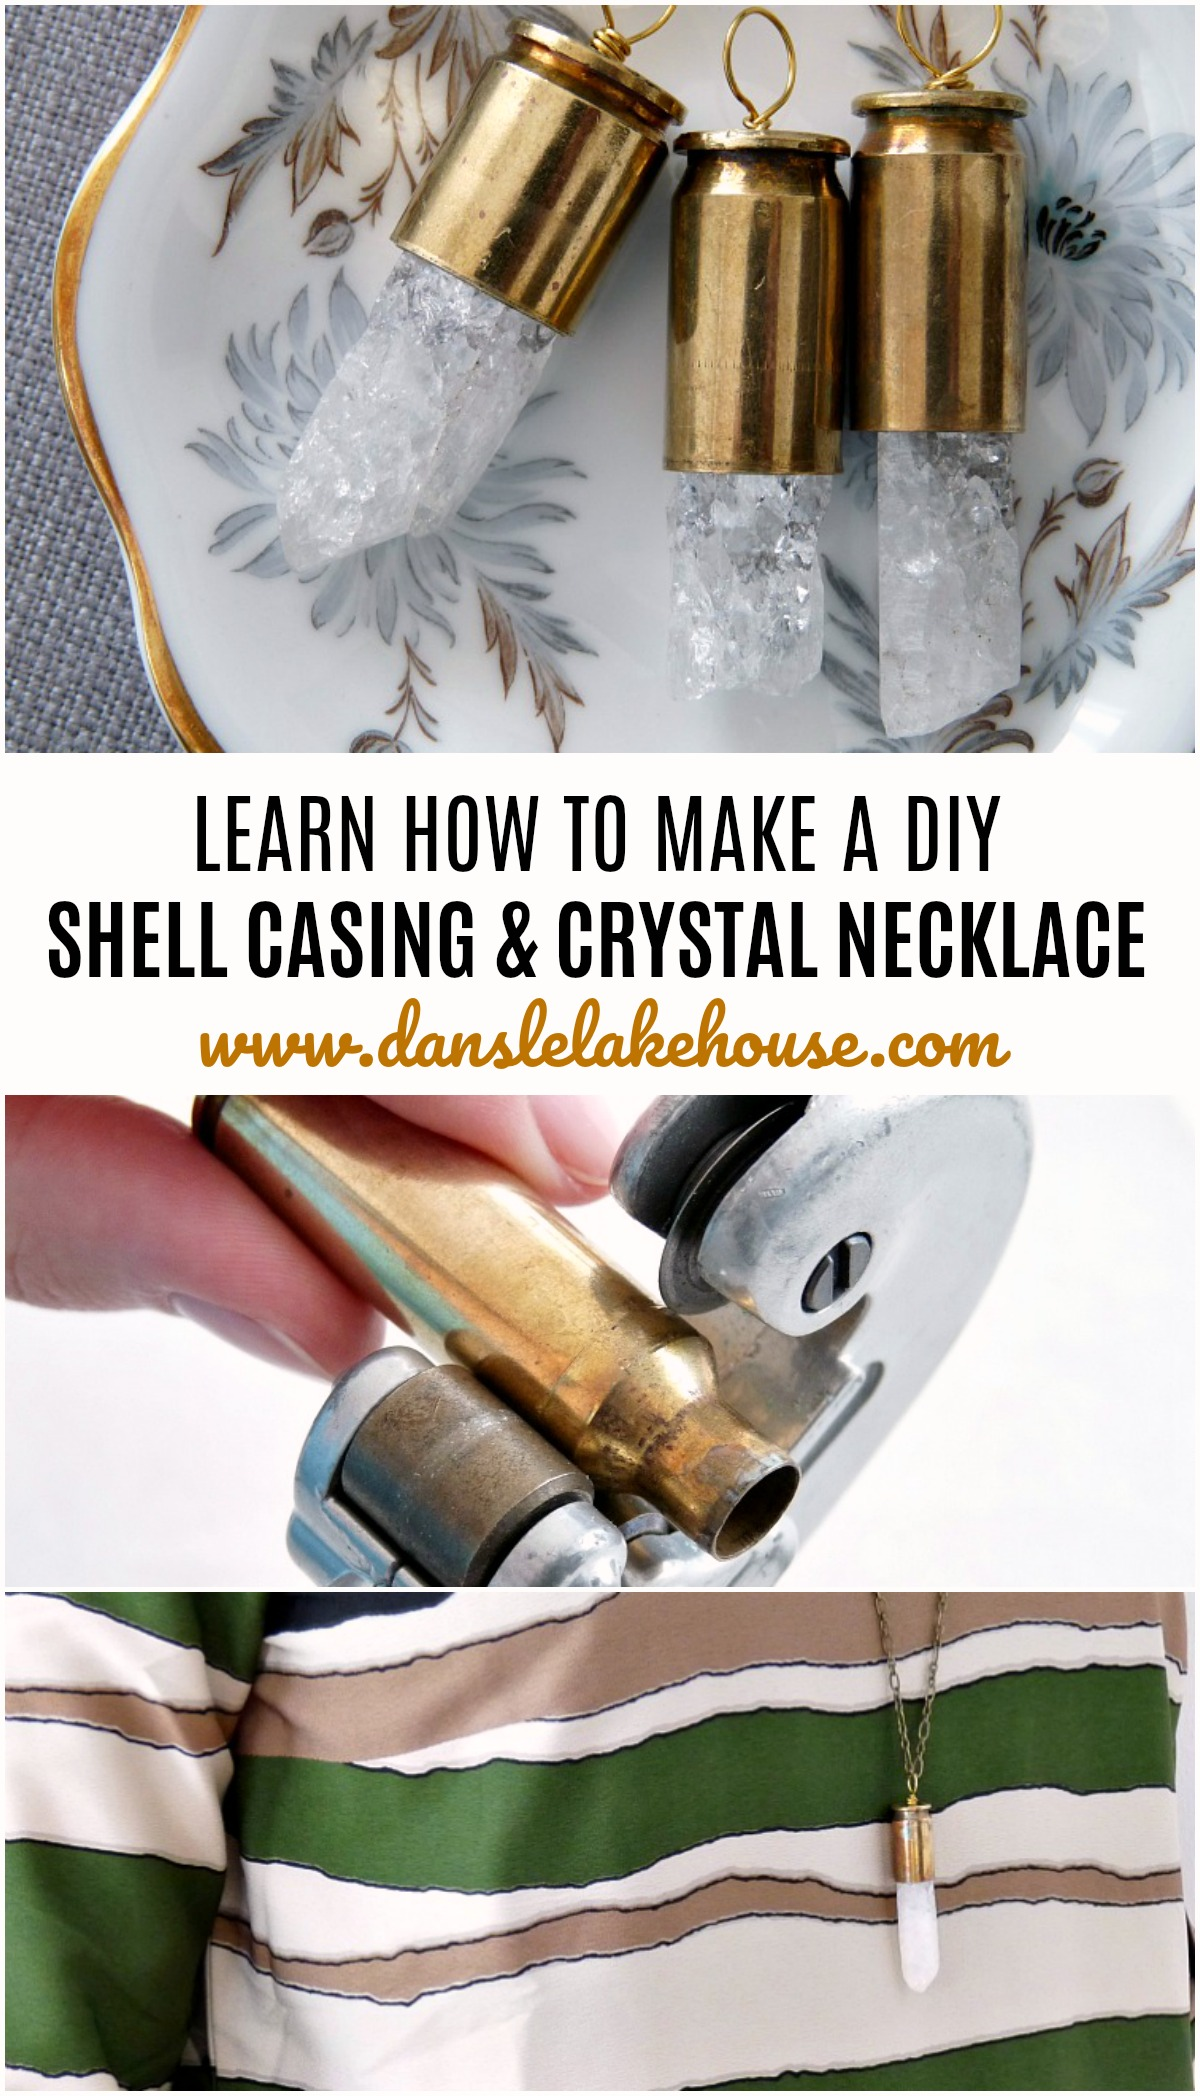 DIY shell casing and crystal necklace